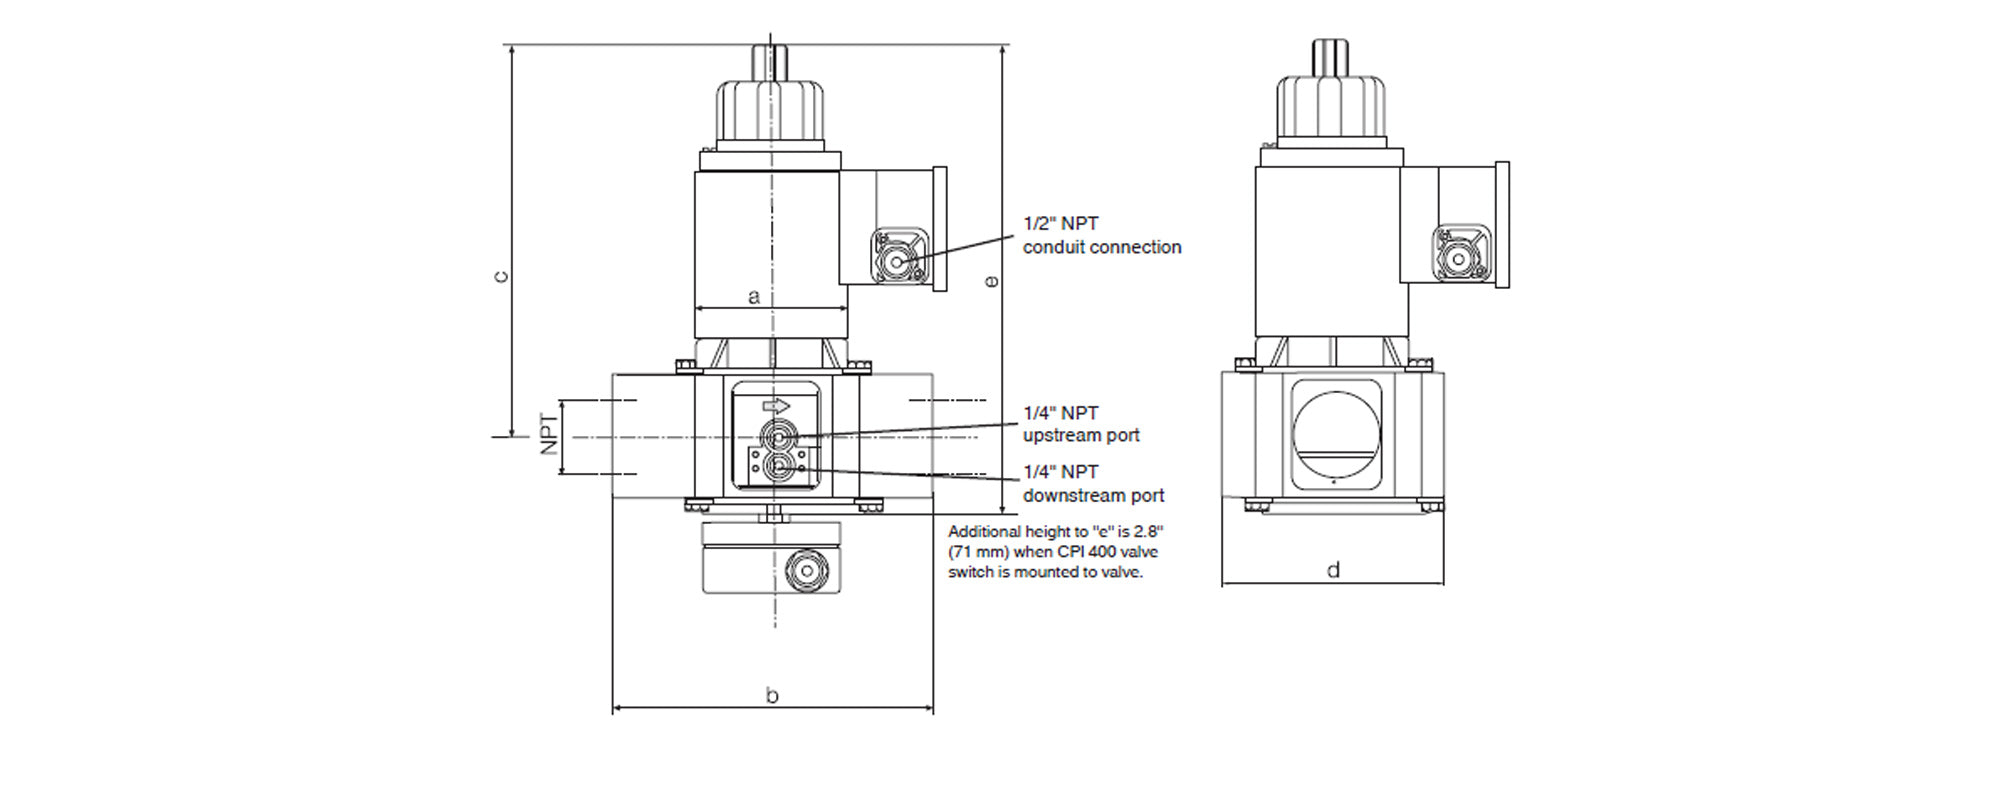 Dimensions For Gas Valve MVDLE215/5